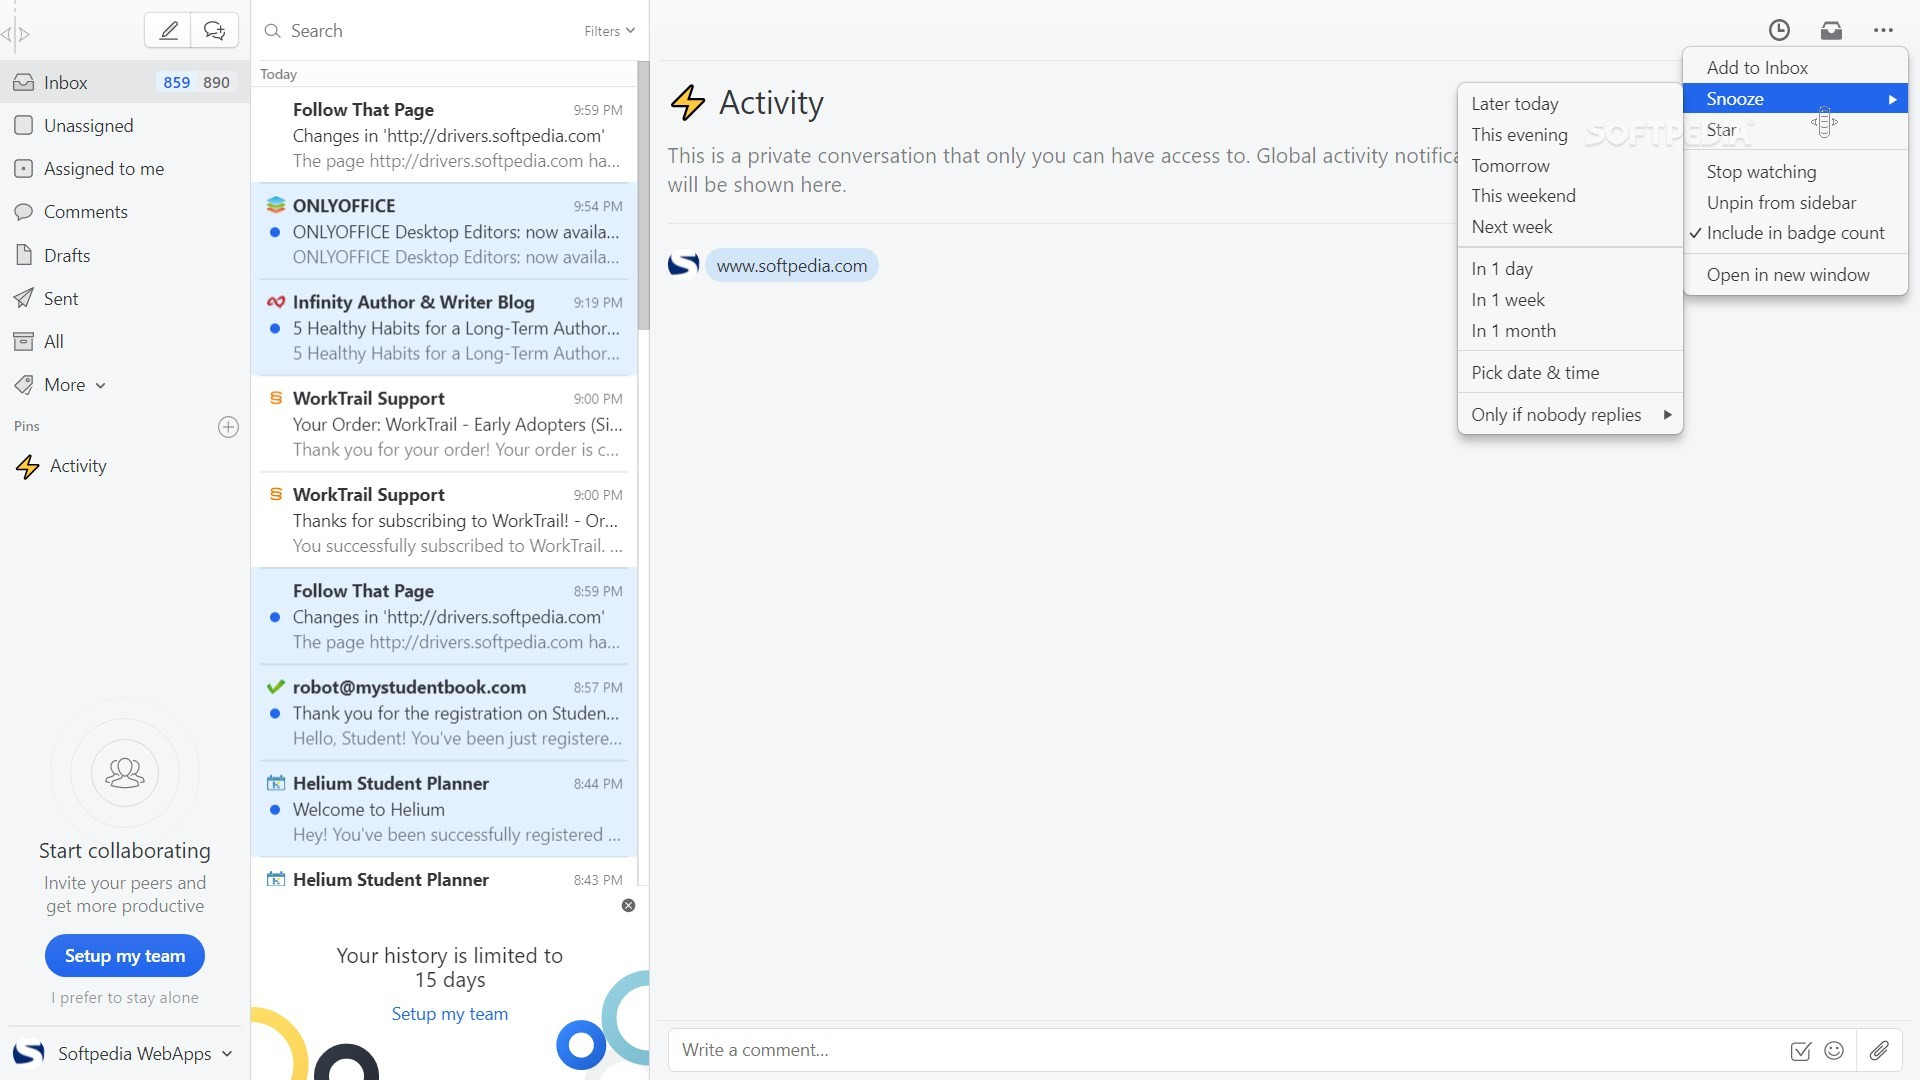 Boost your productivity by bringing all your emails and chats to one platform